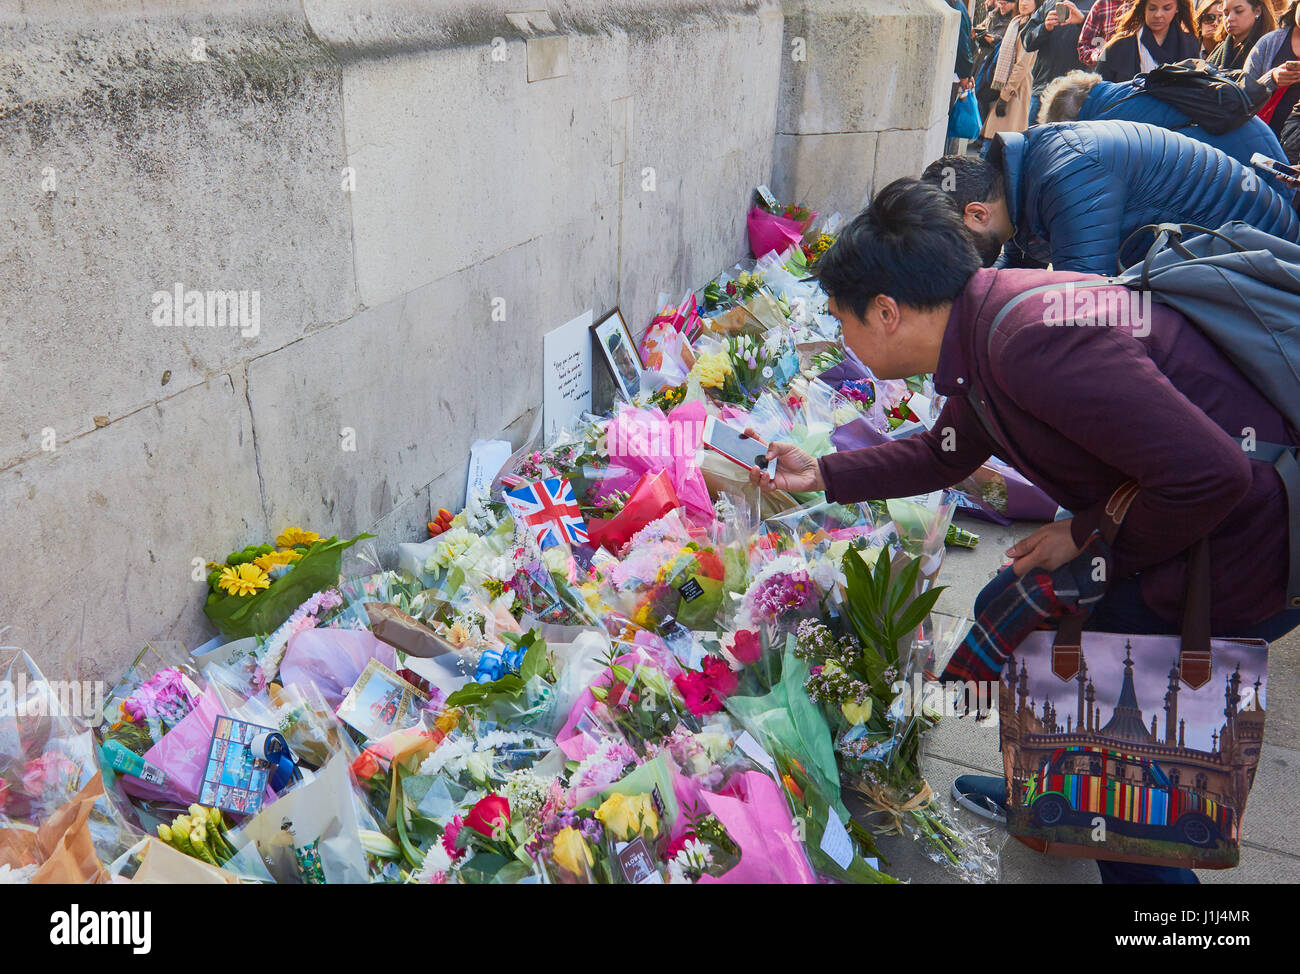 Tourists looking at floral tributes to victims of the Westminster terrorist attack, London, England - Stock Image